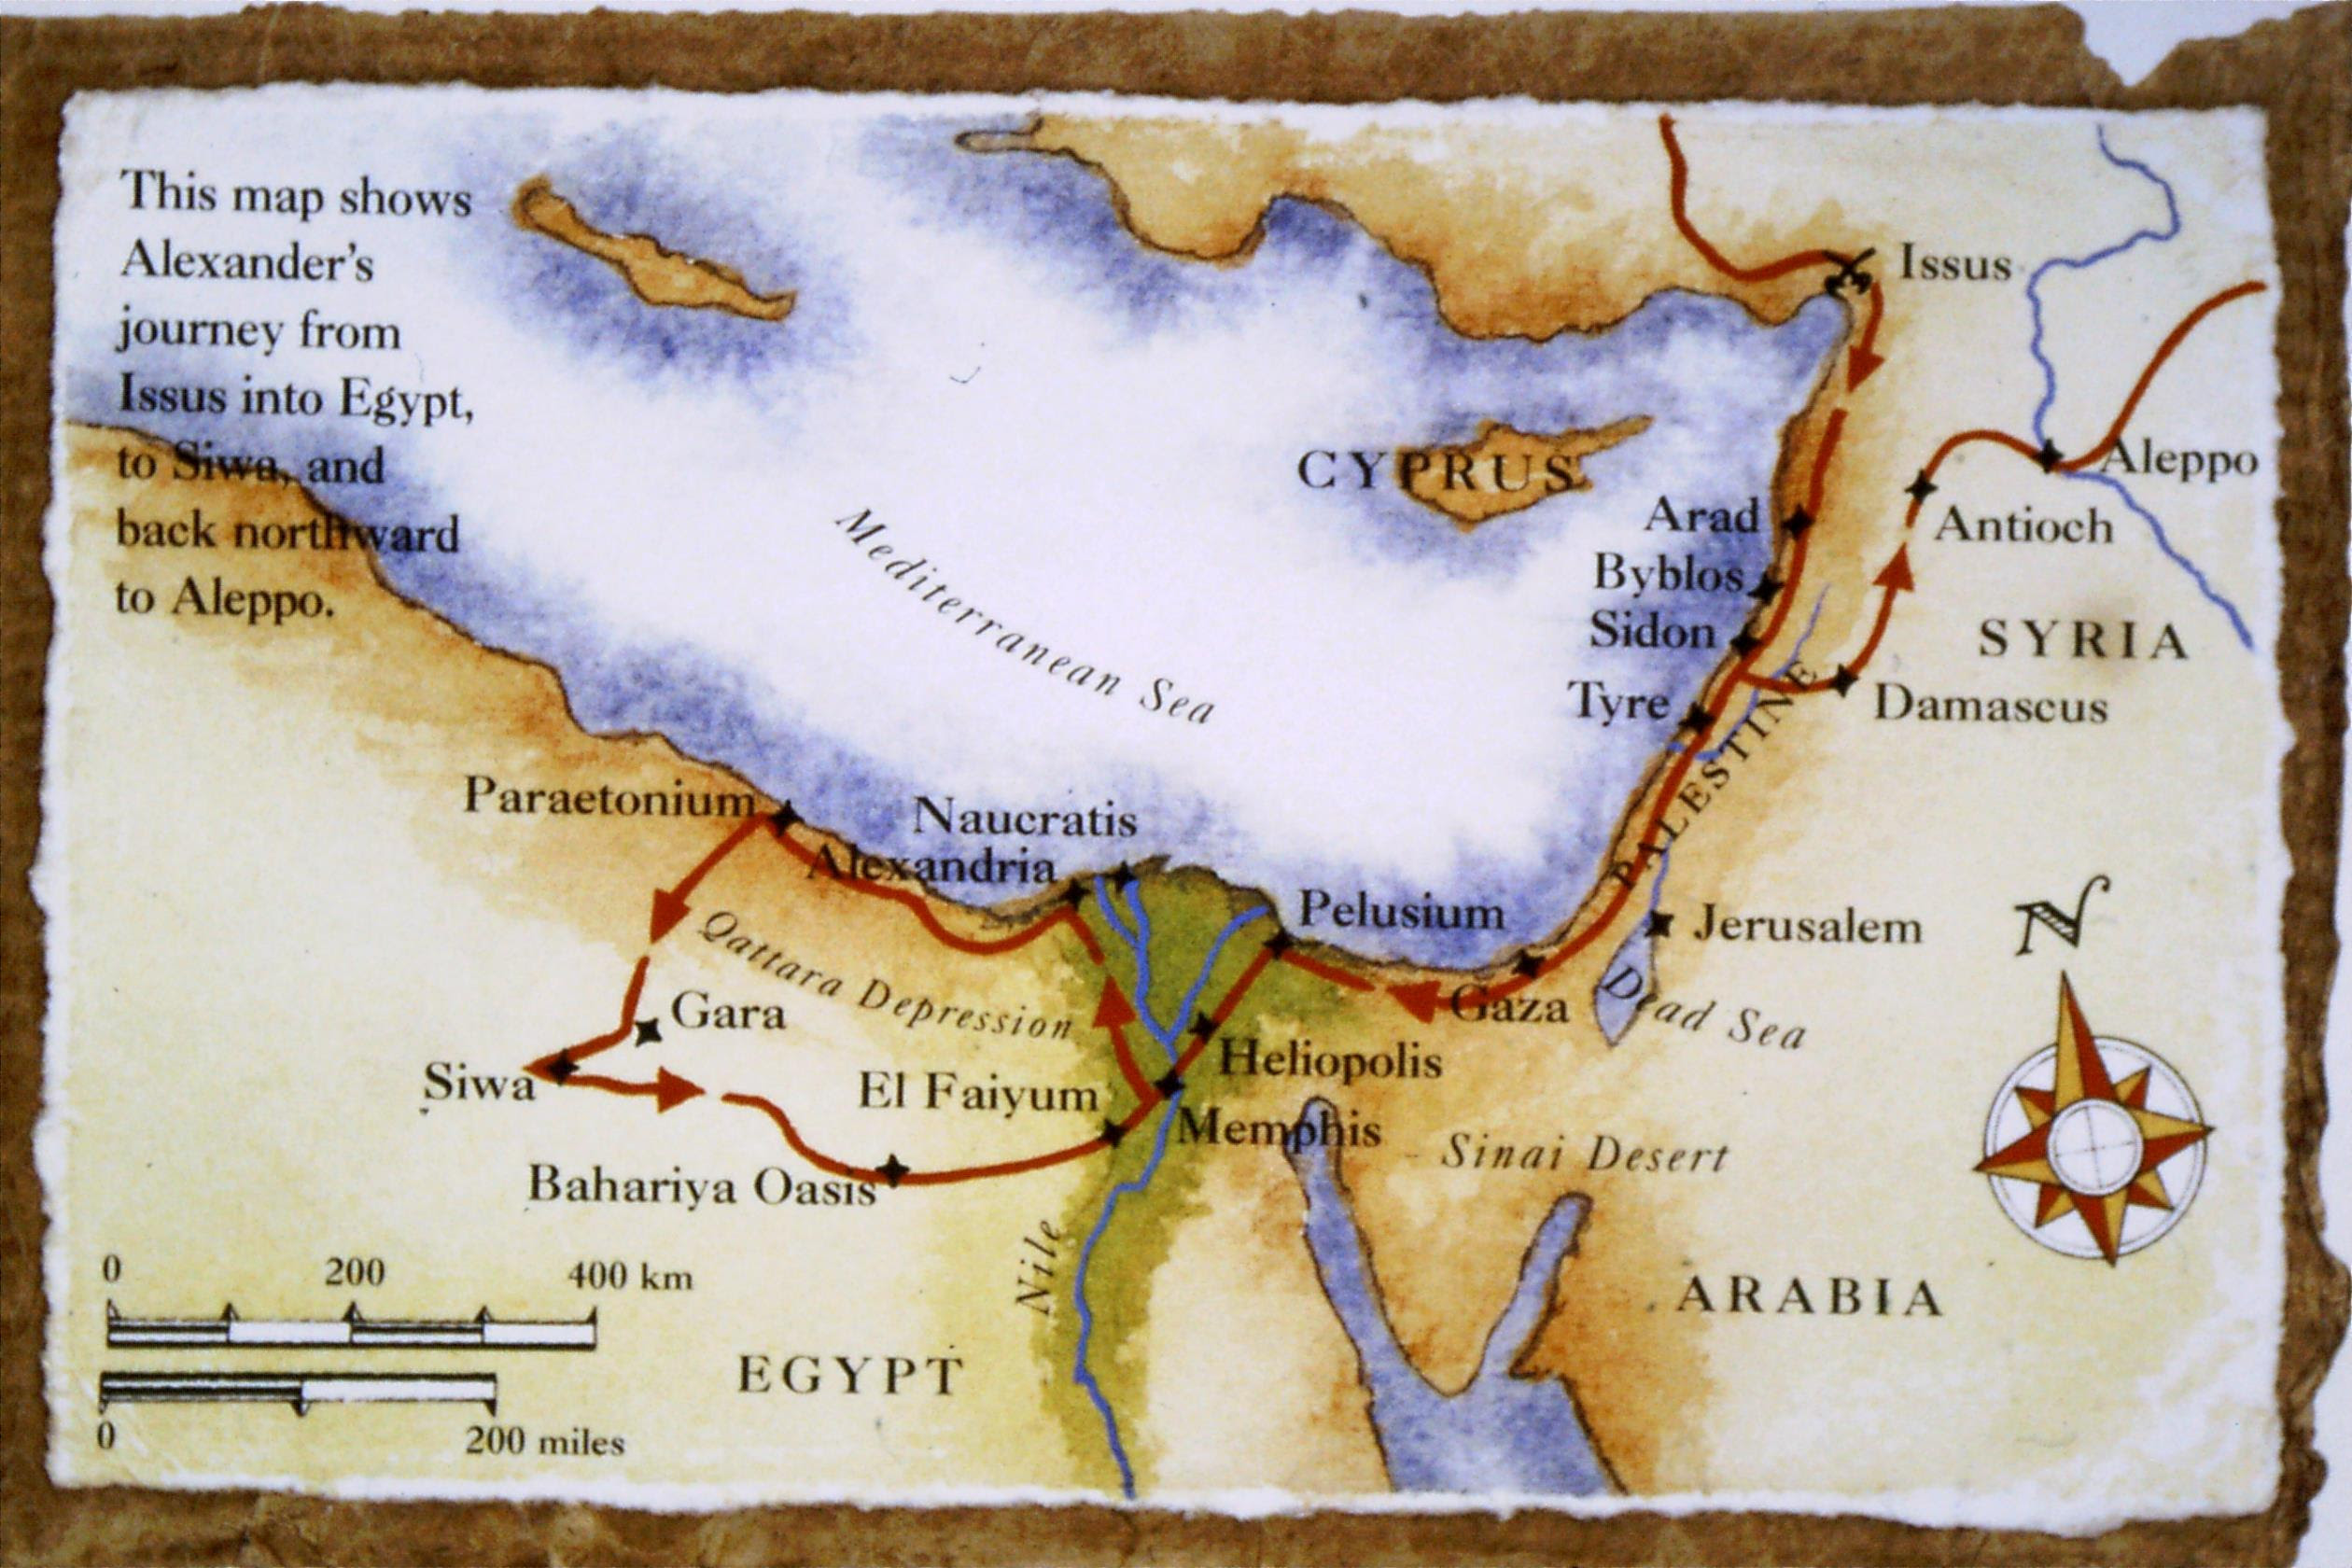 ALEXANDER'S JOURNEY FROM ISSUS TO SIWA